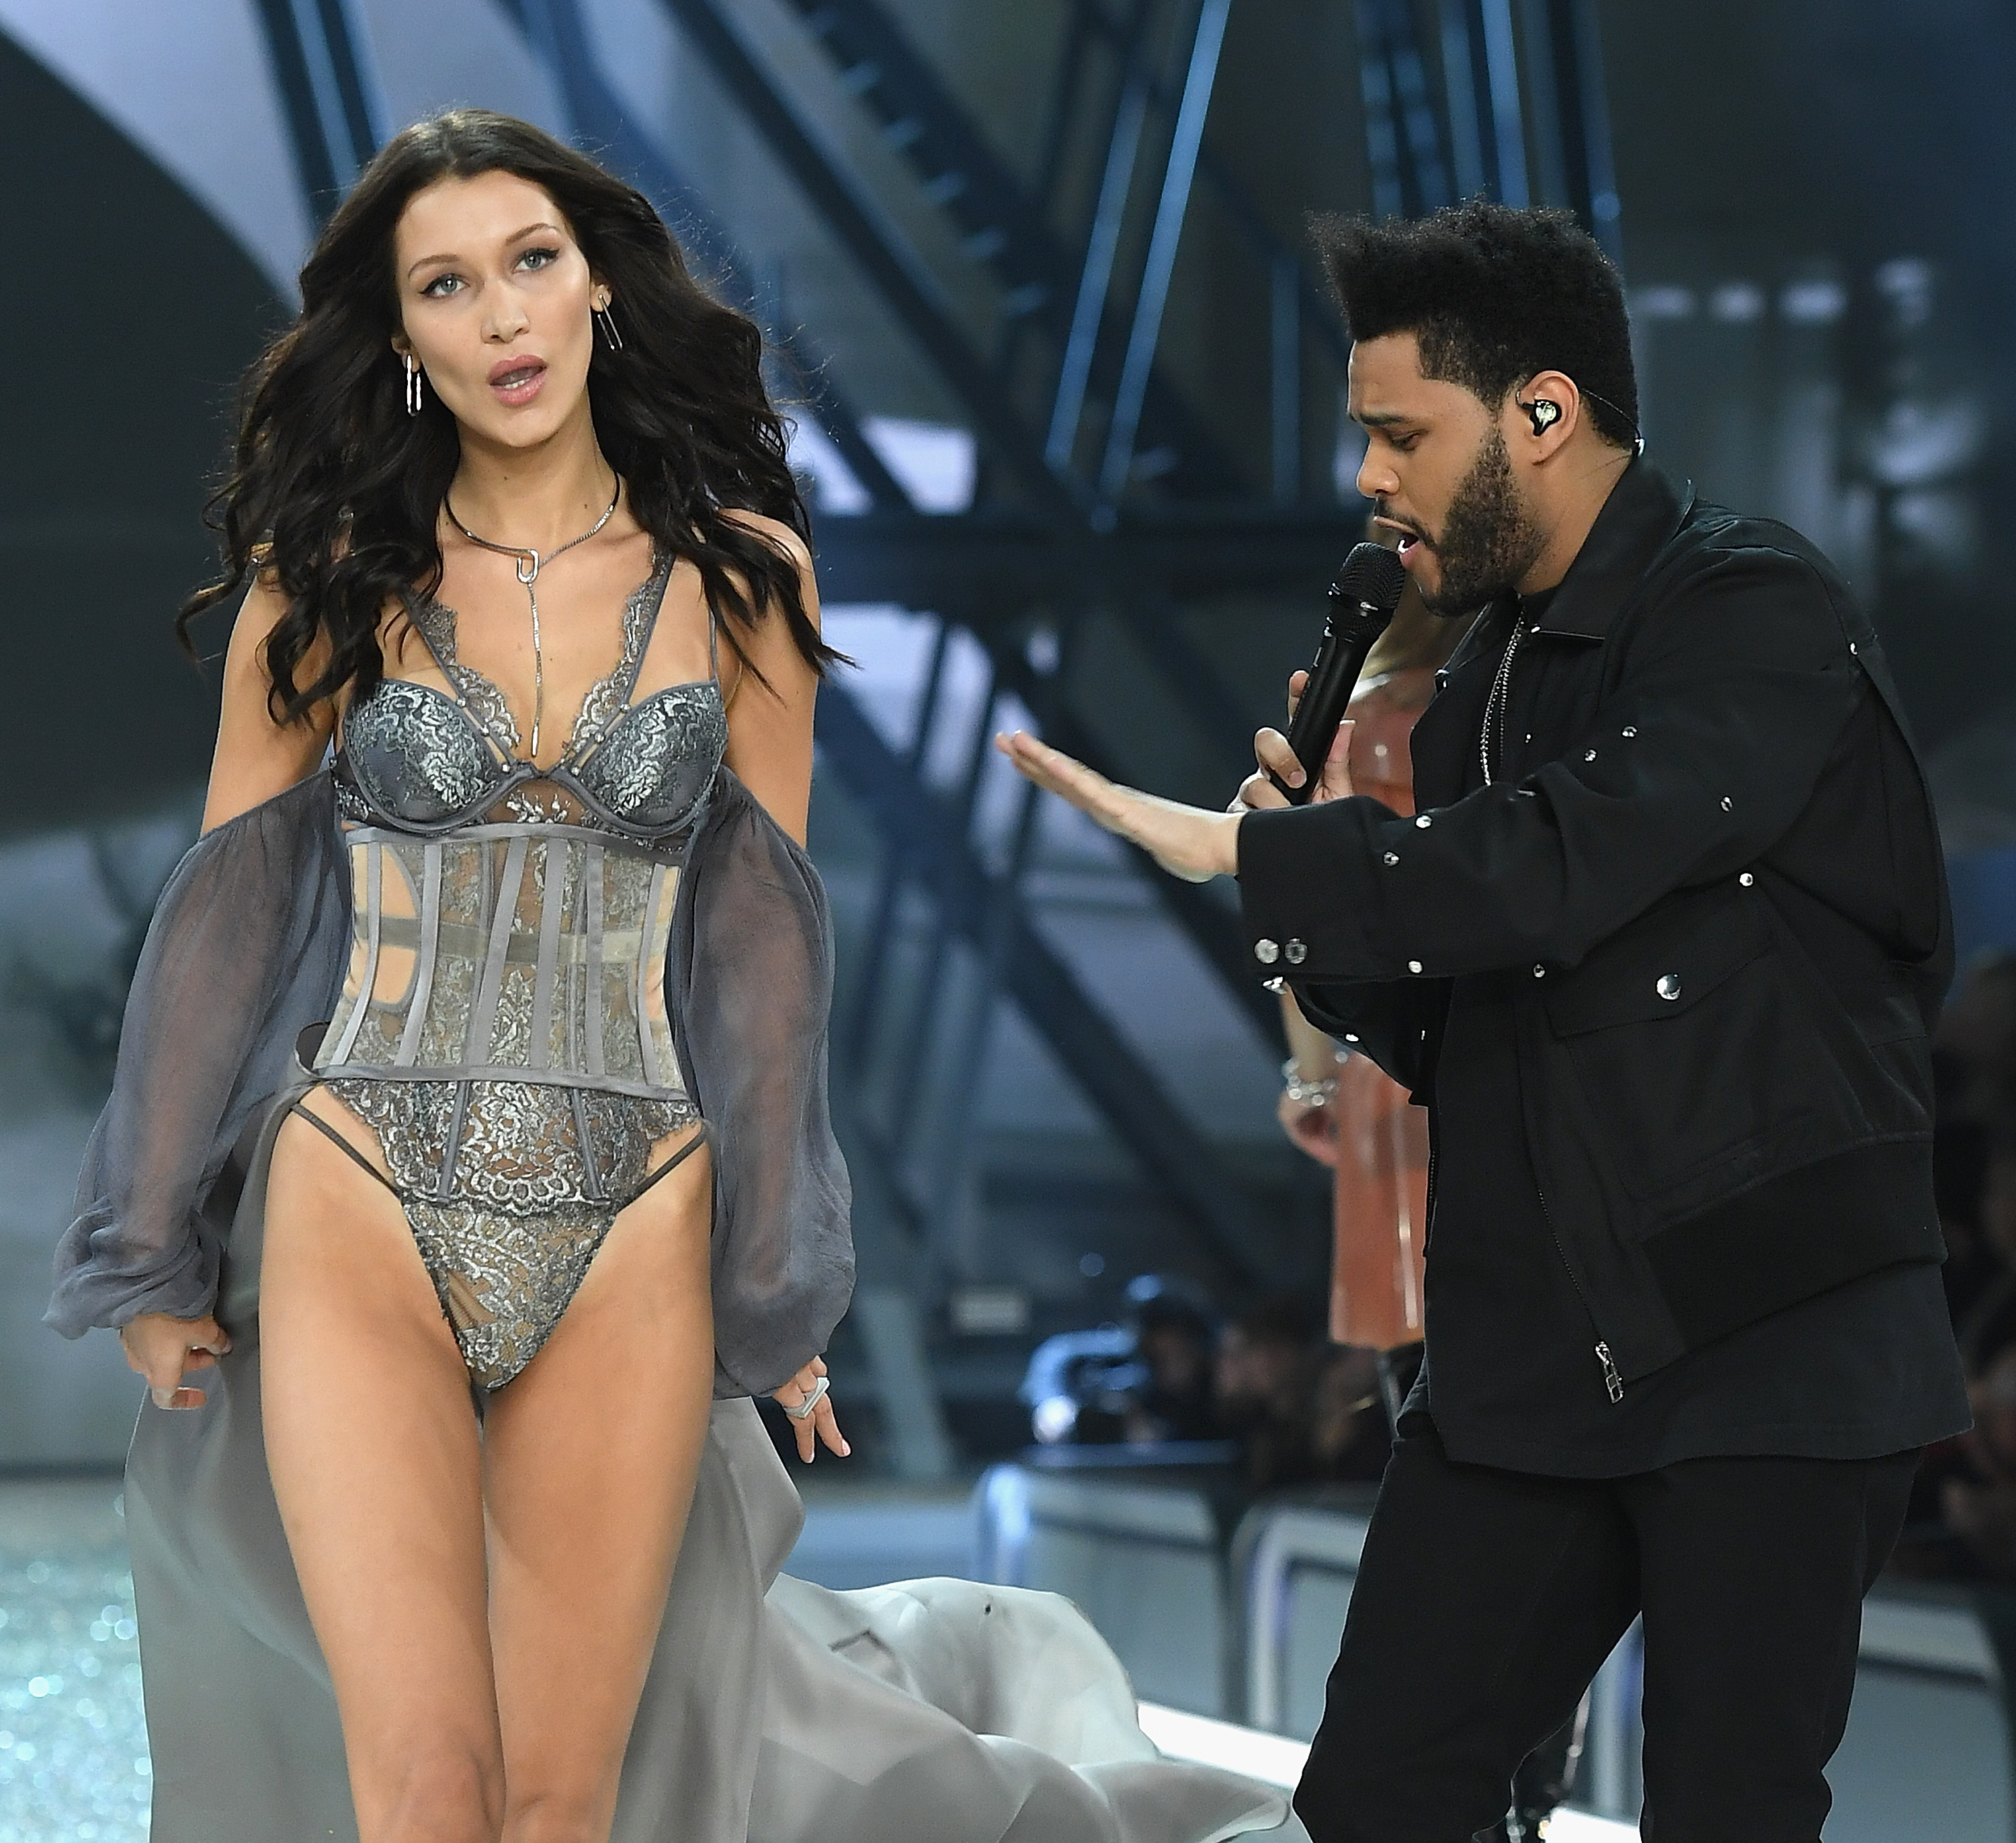 Bella Hadid walks the runway as The Weekend performs during the 2016 Victoria's Secret Fashion Show on November 30, 2016, in Paris, France. (Getty Images)